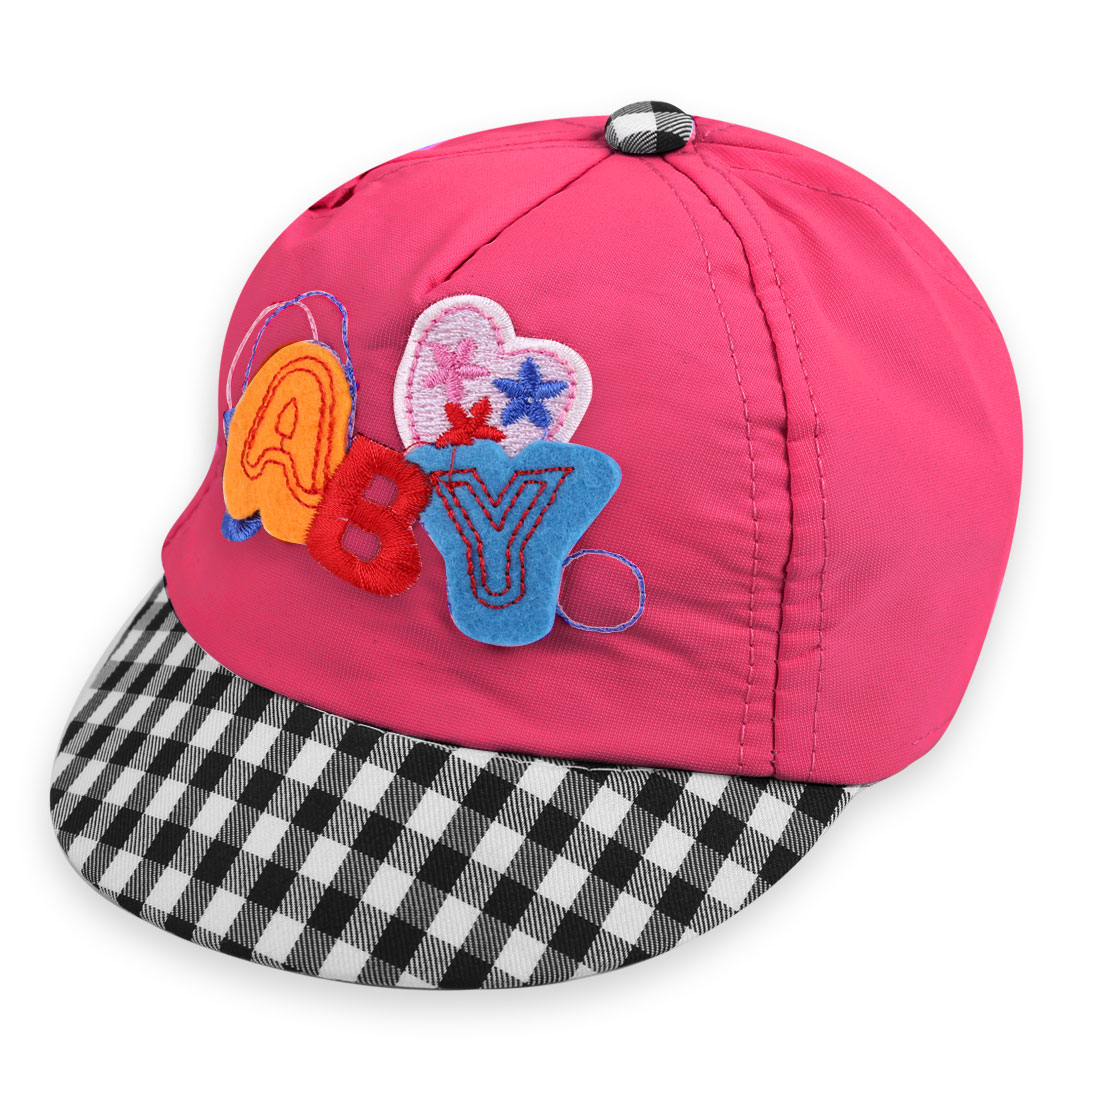 Baby Lovely Embroidered Letters Design Check Pattern Fuchsia Visor Cap Hat